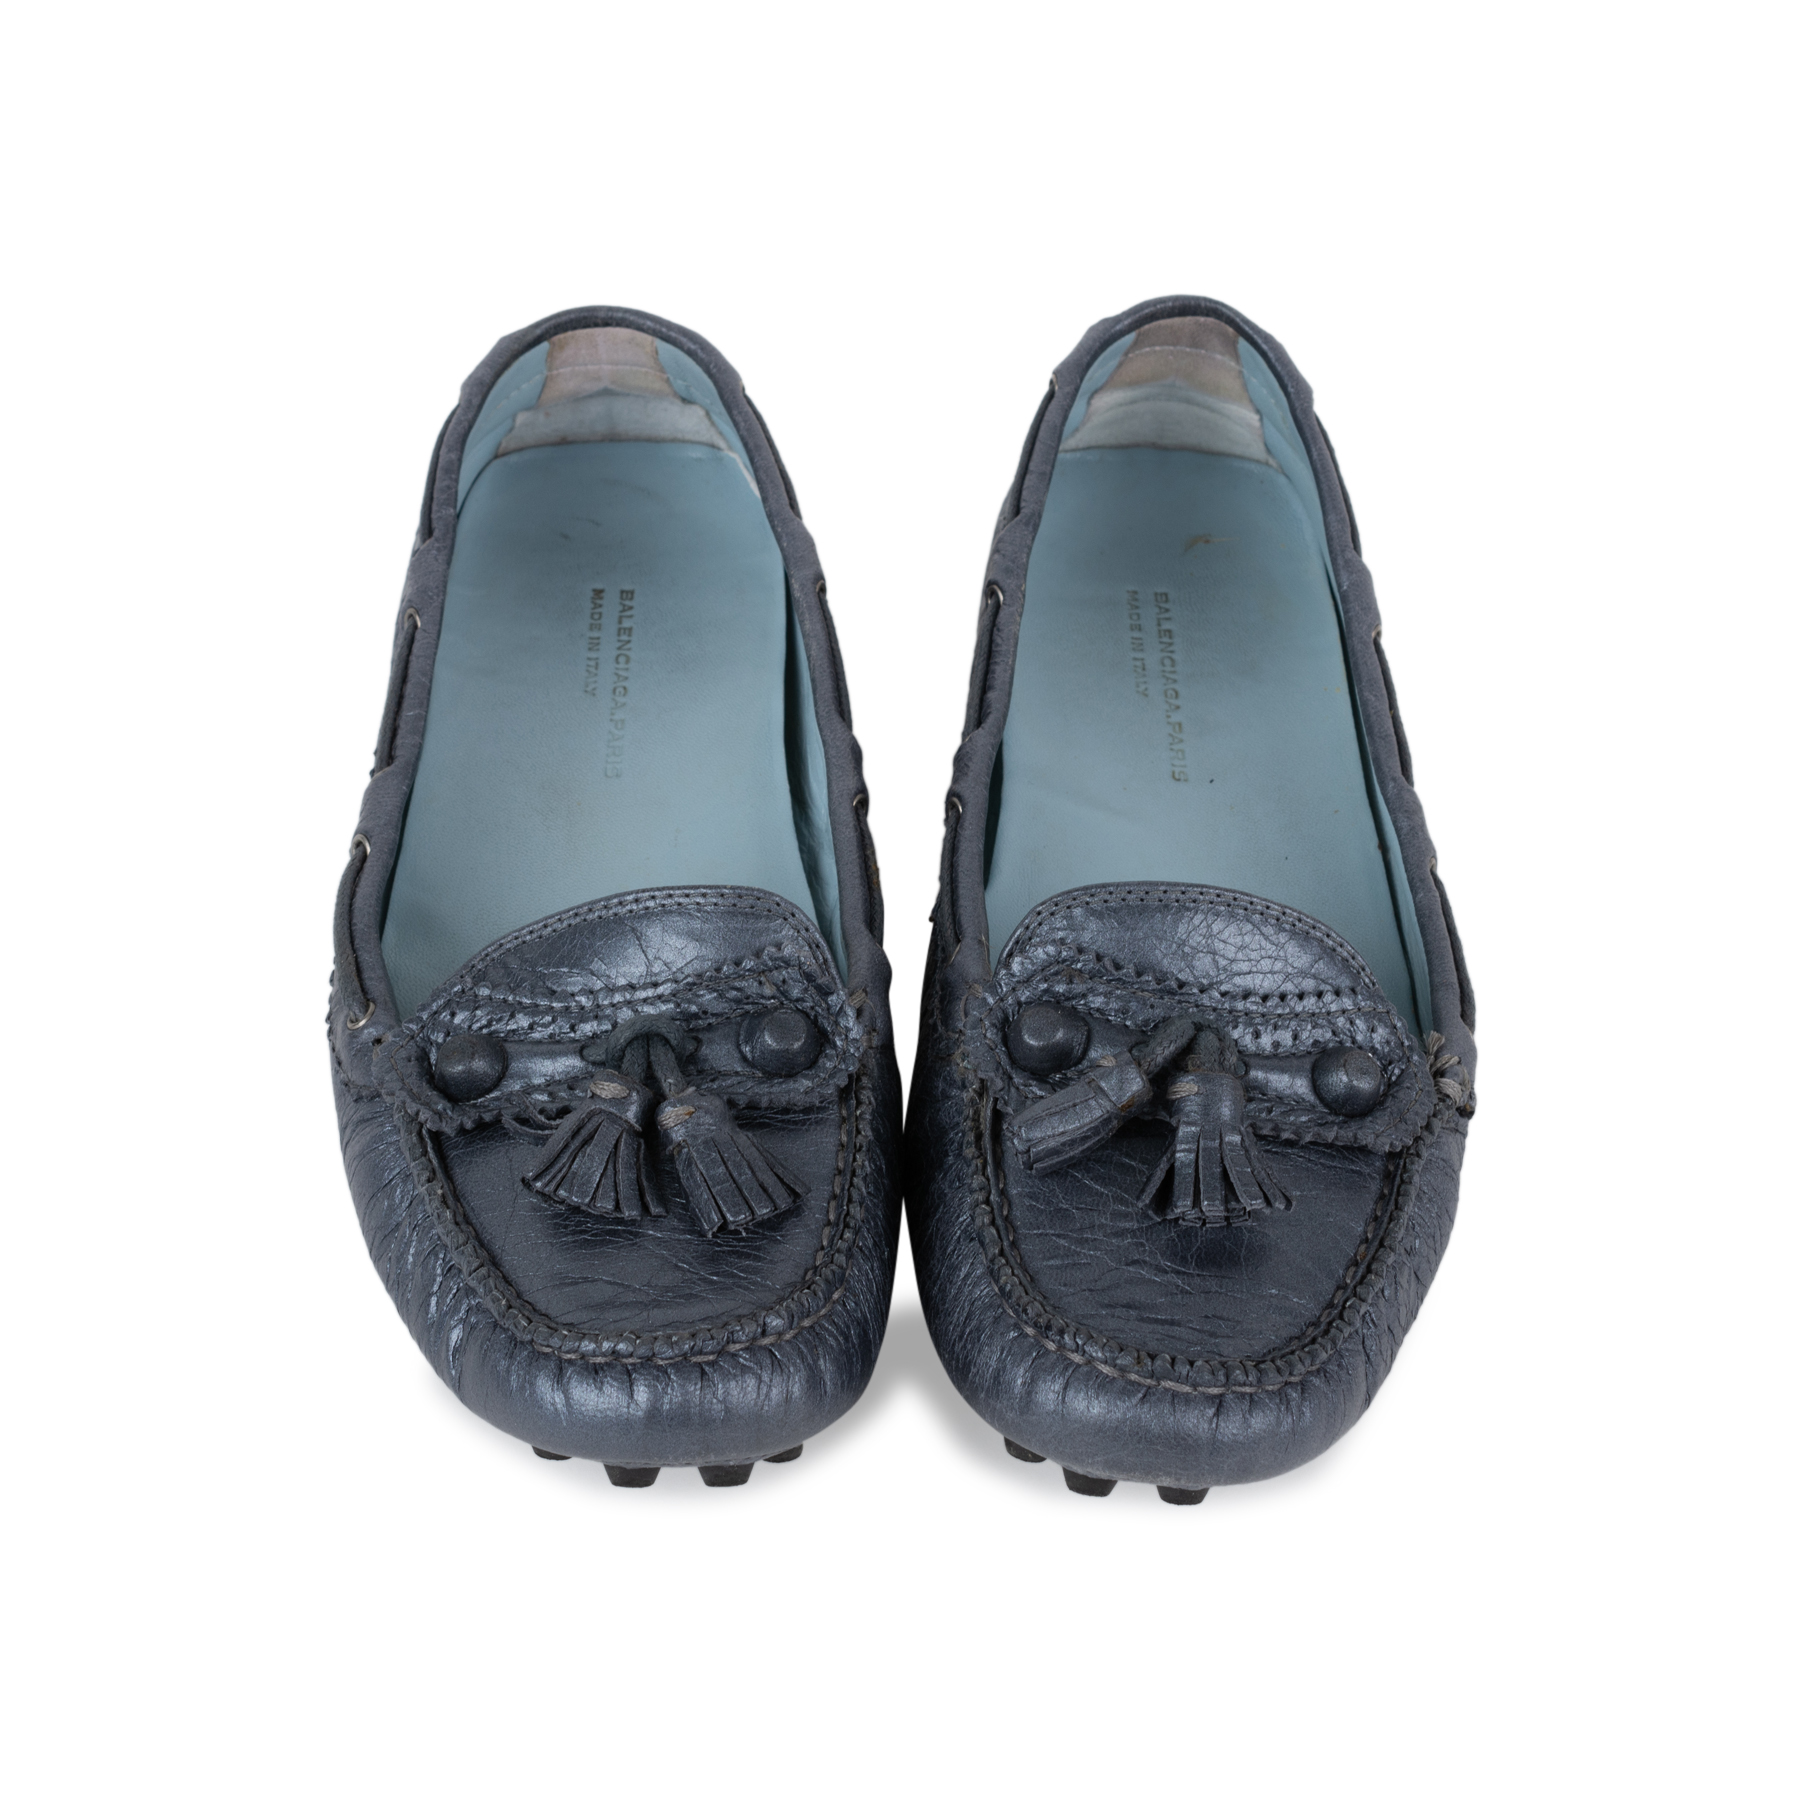 0ea8553b0776 Authentic Second Hand Balenciaga Arena Tassel Loafers (PSS-569-00012 ...